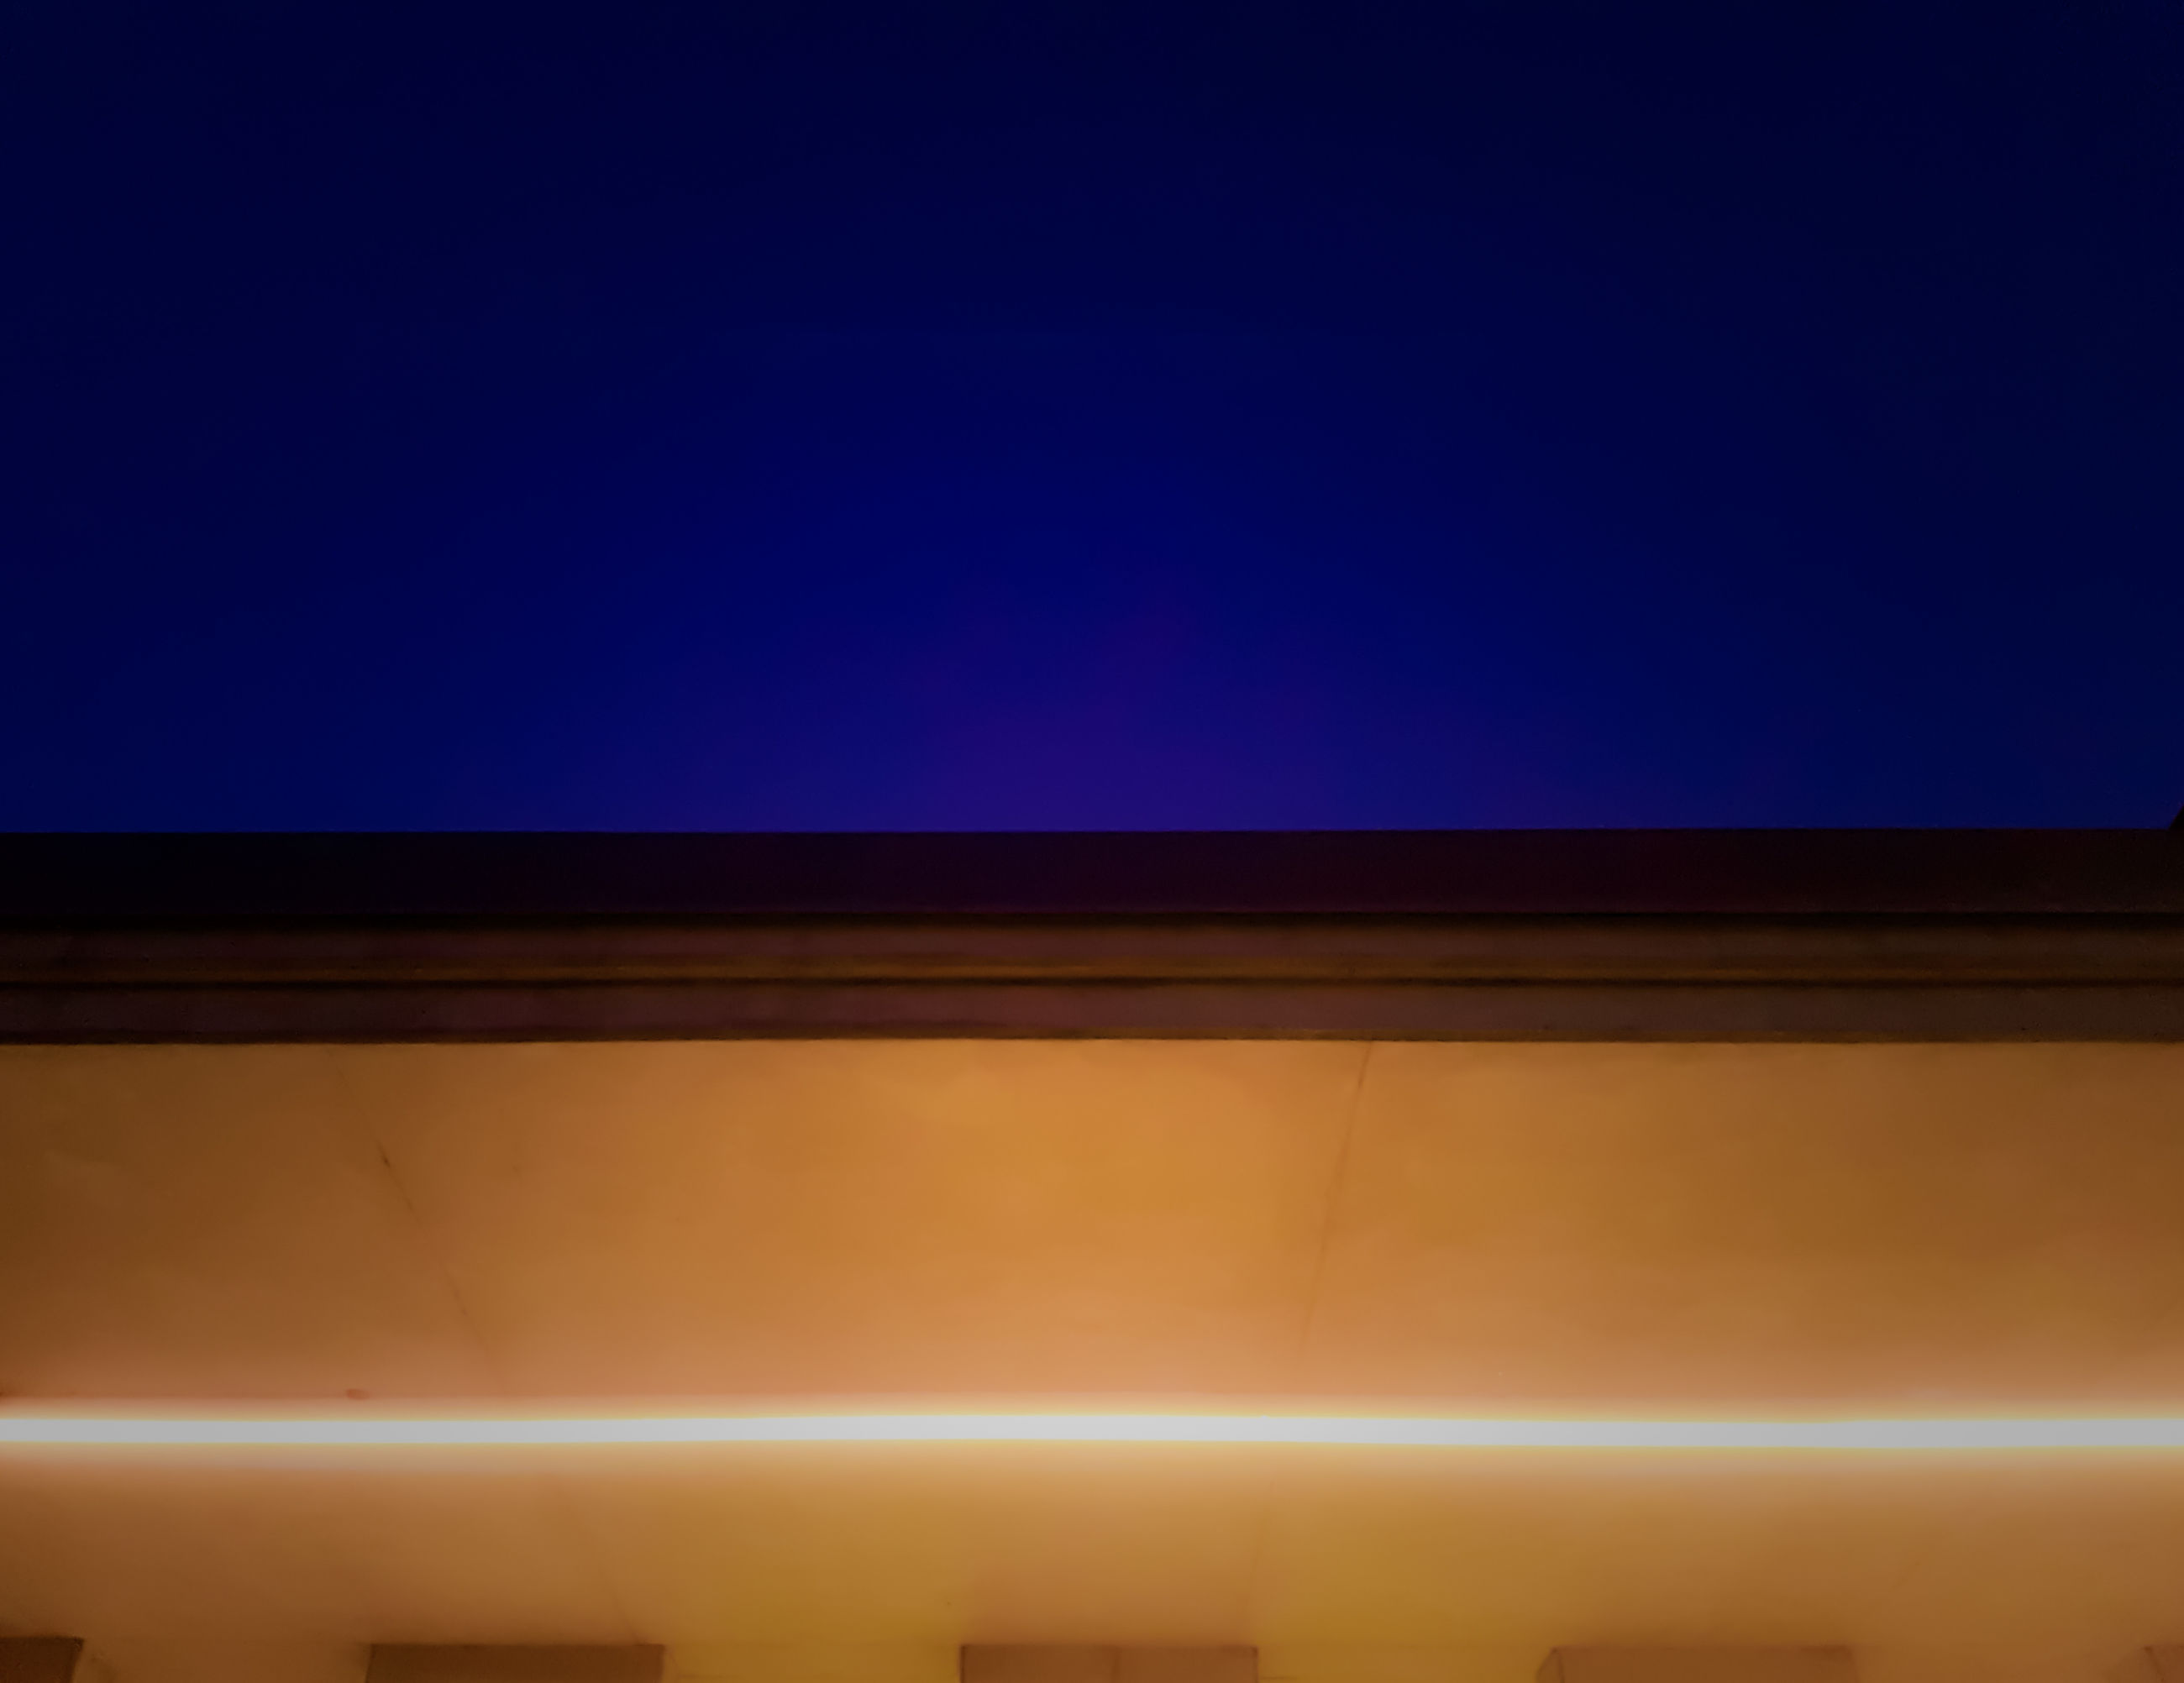 low angle view, architecture, blue, no people, high section